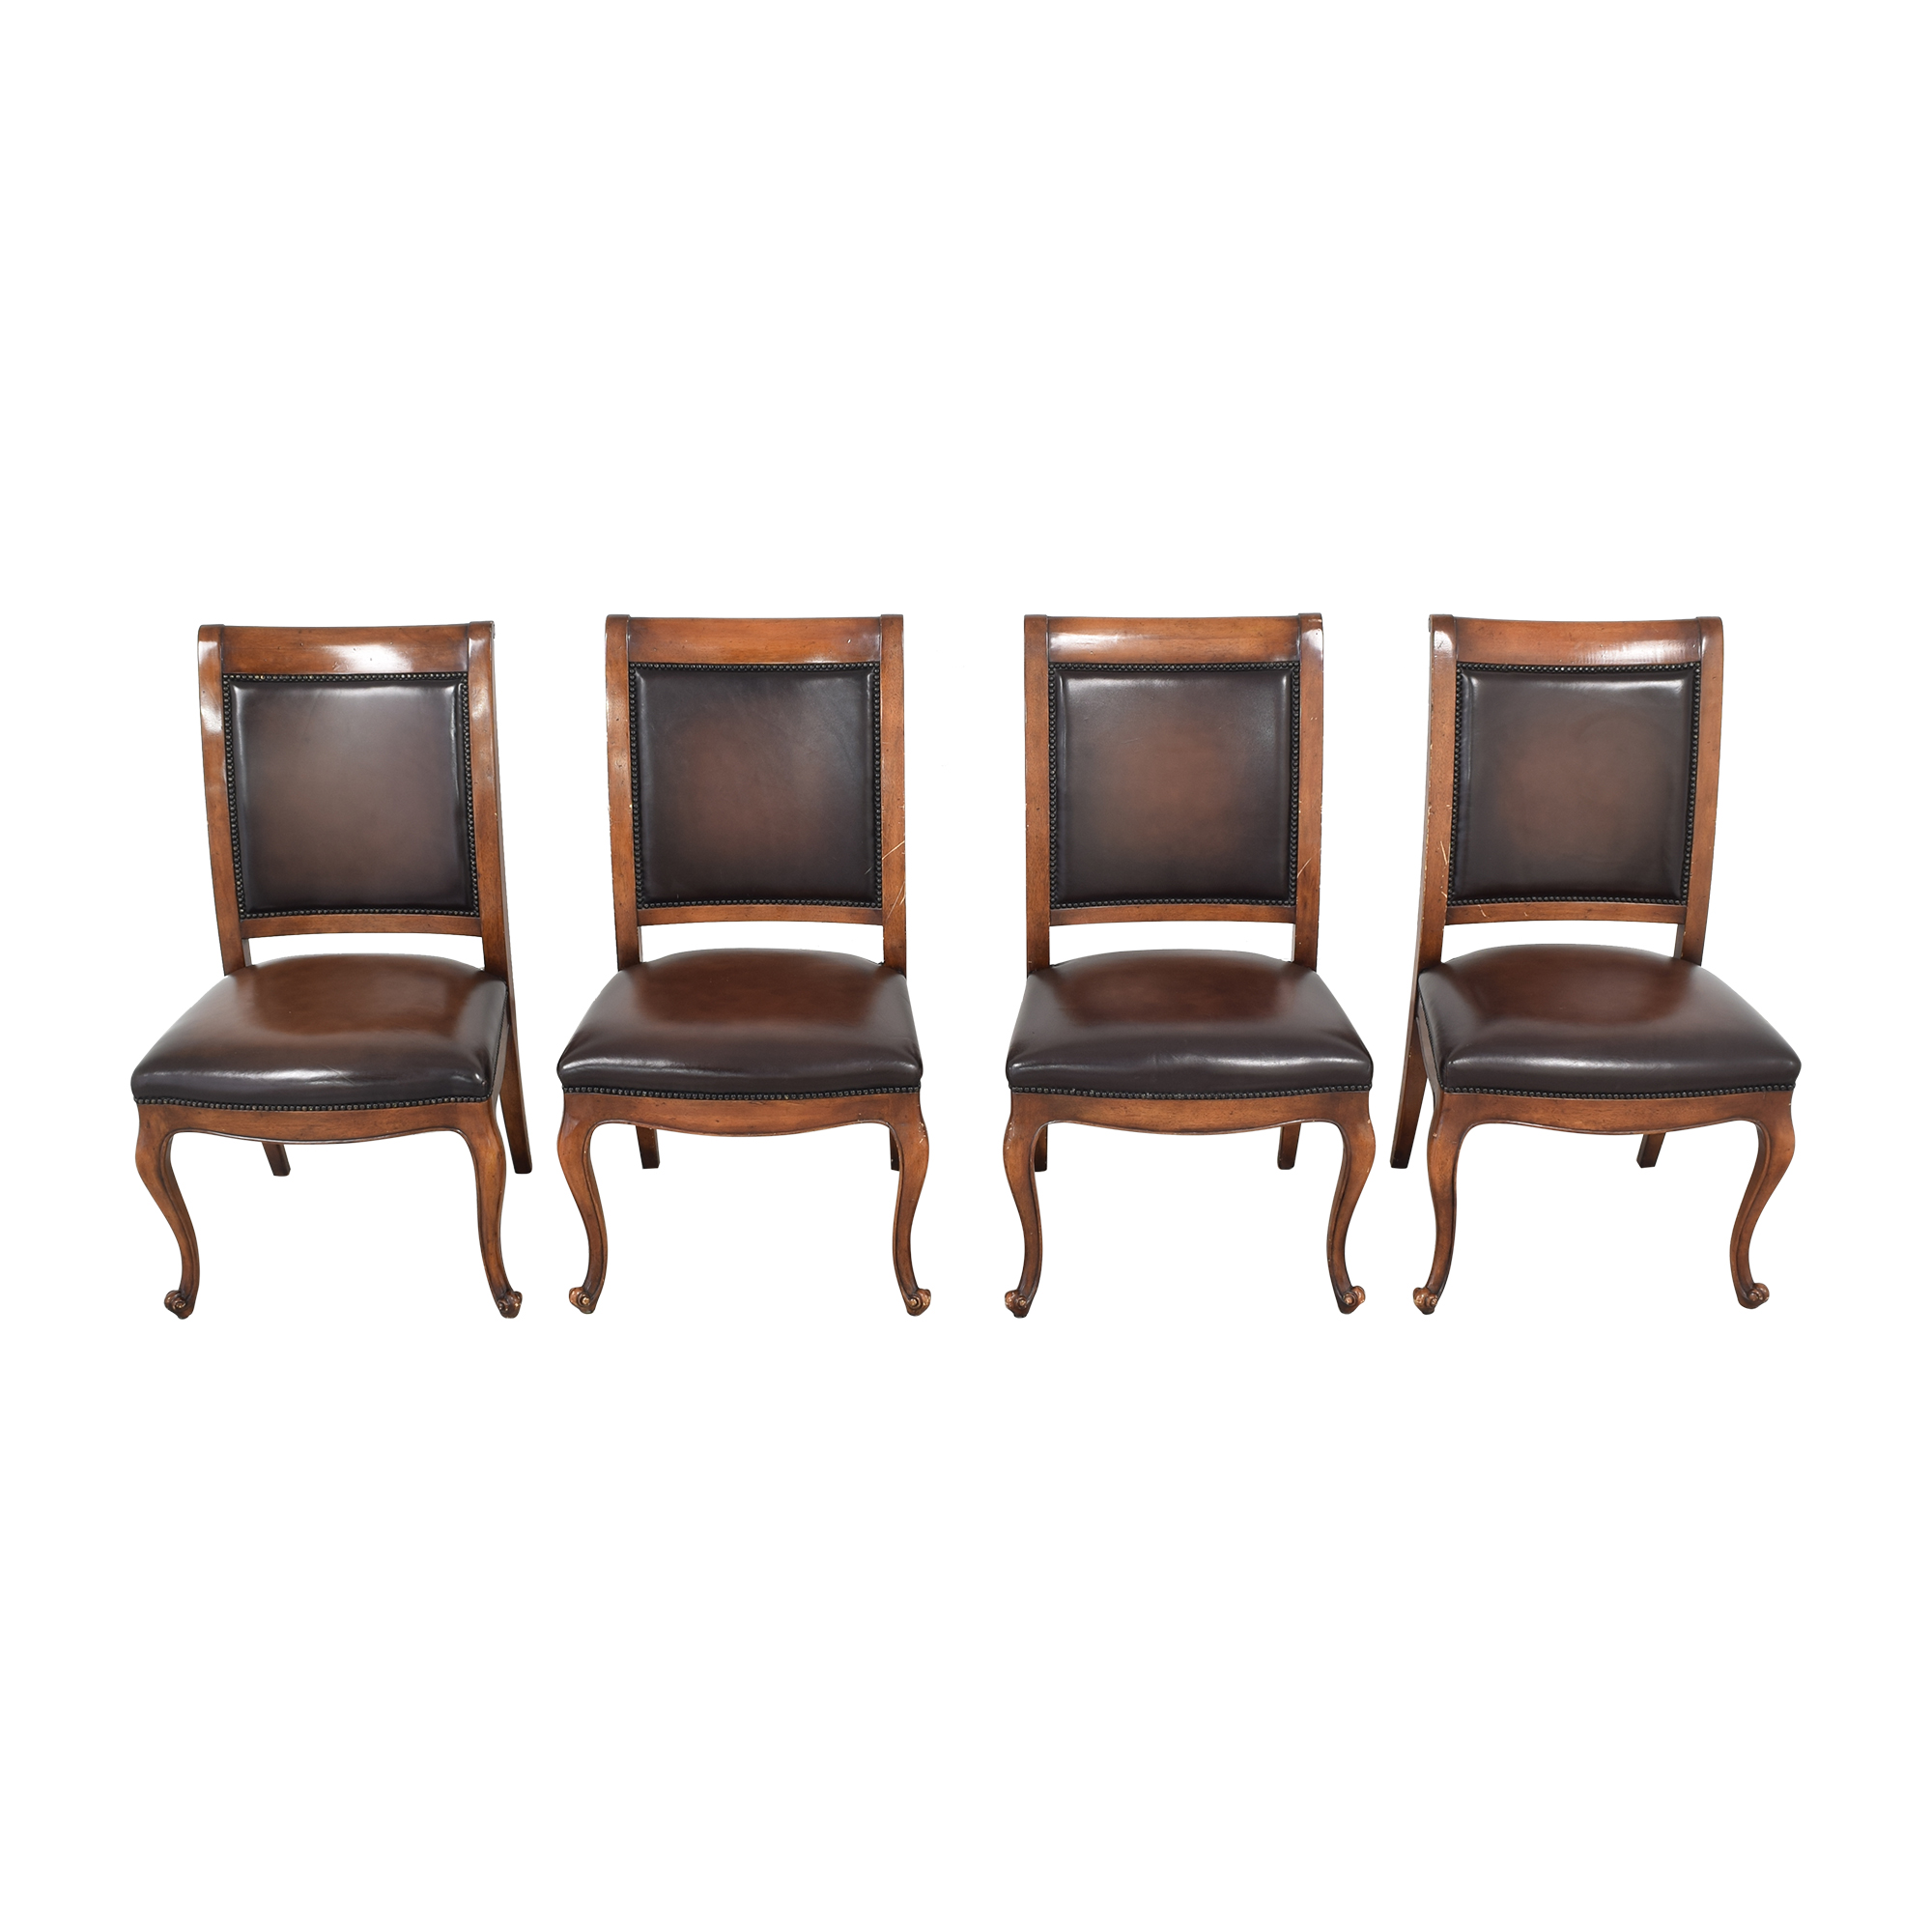 Theodore Alexander Theodore Alexander Dining Chairs ct